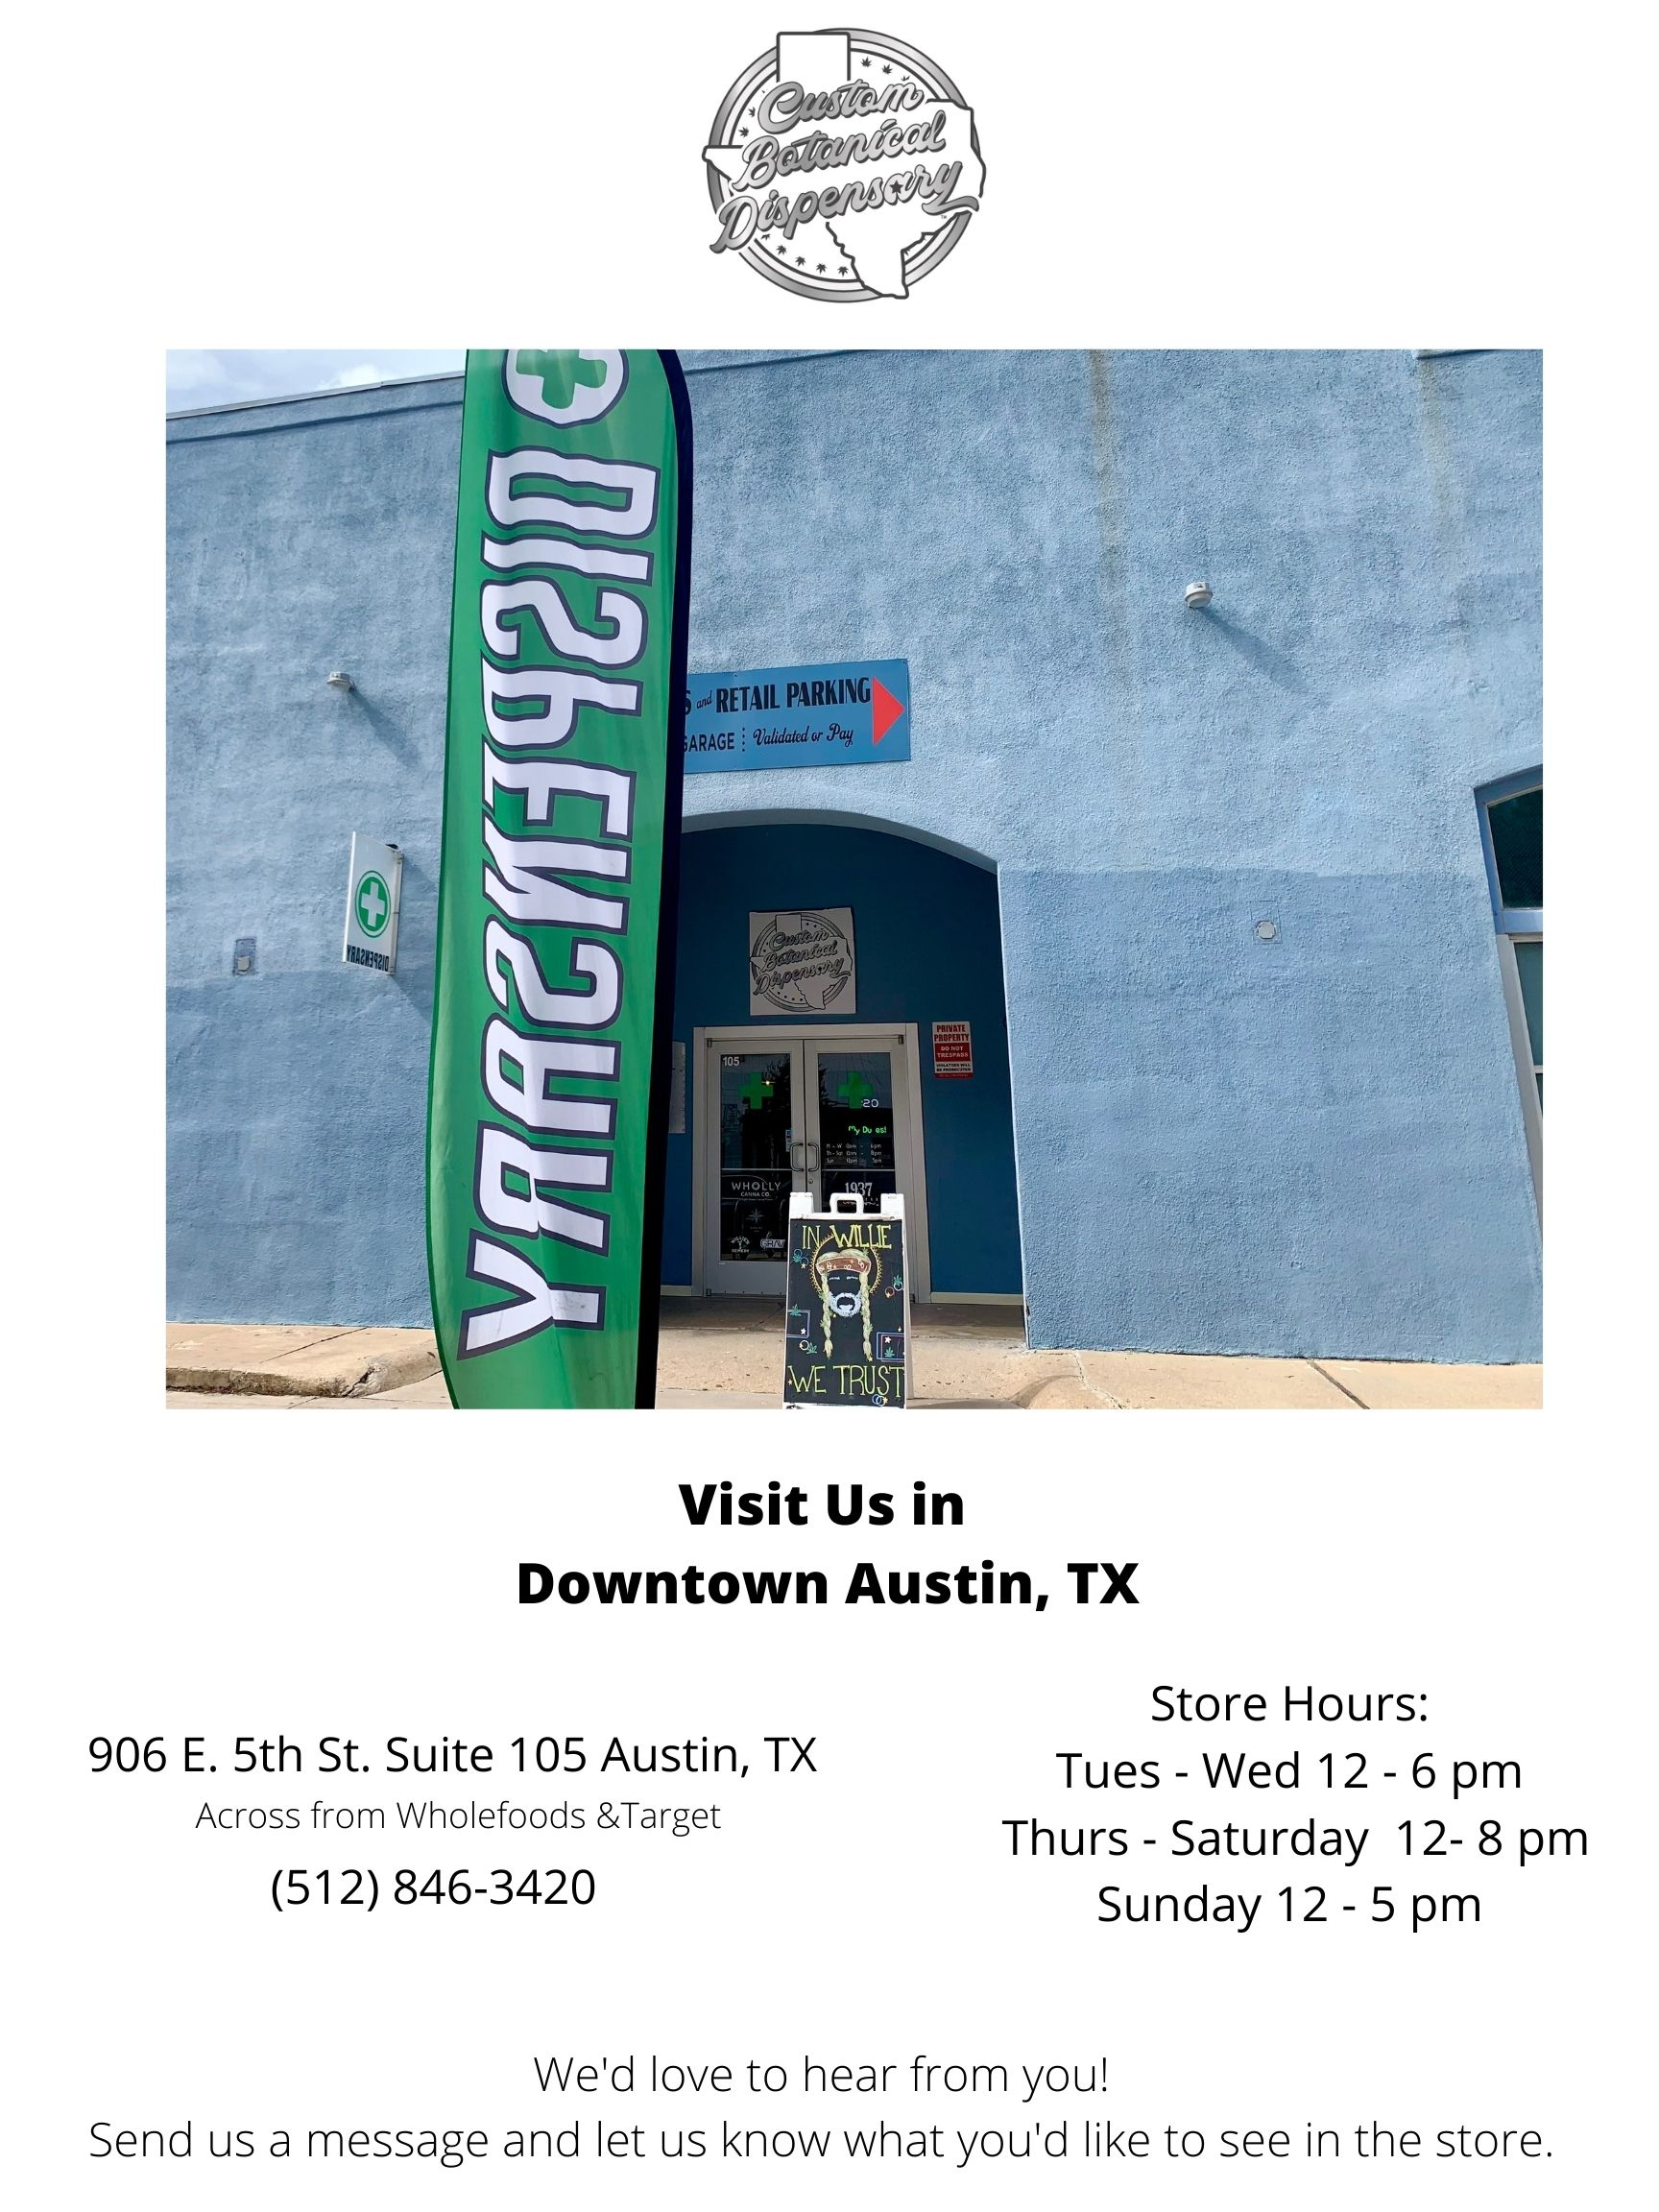 visit-our-flagship-store-in-downtown-austin-tx-2-.jpg